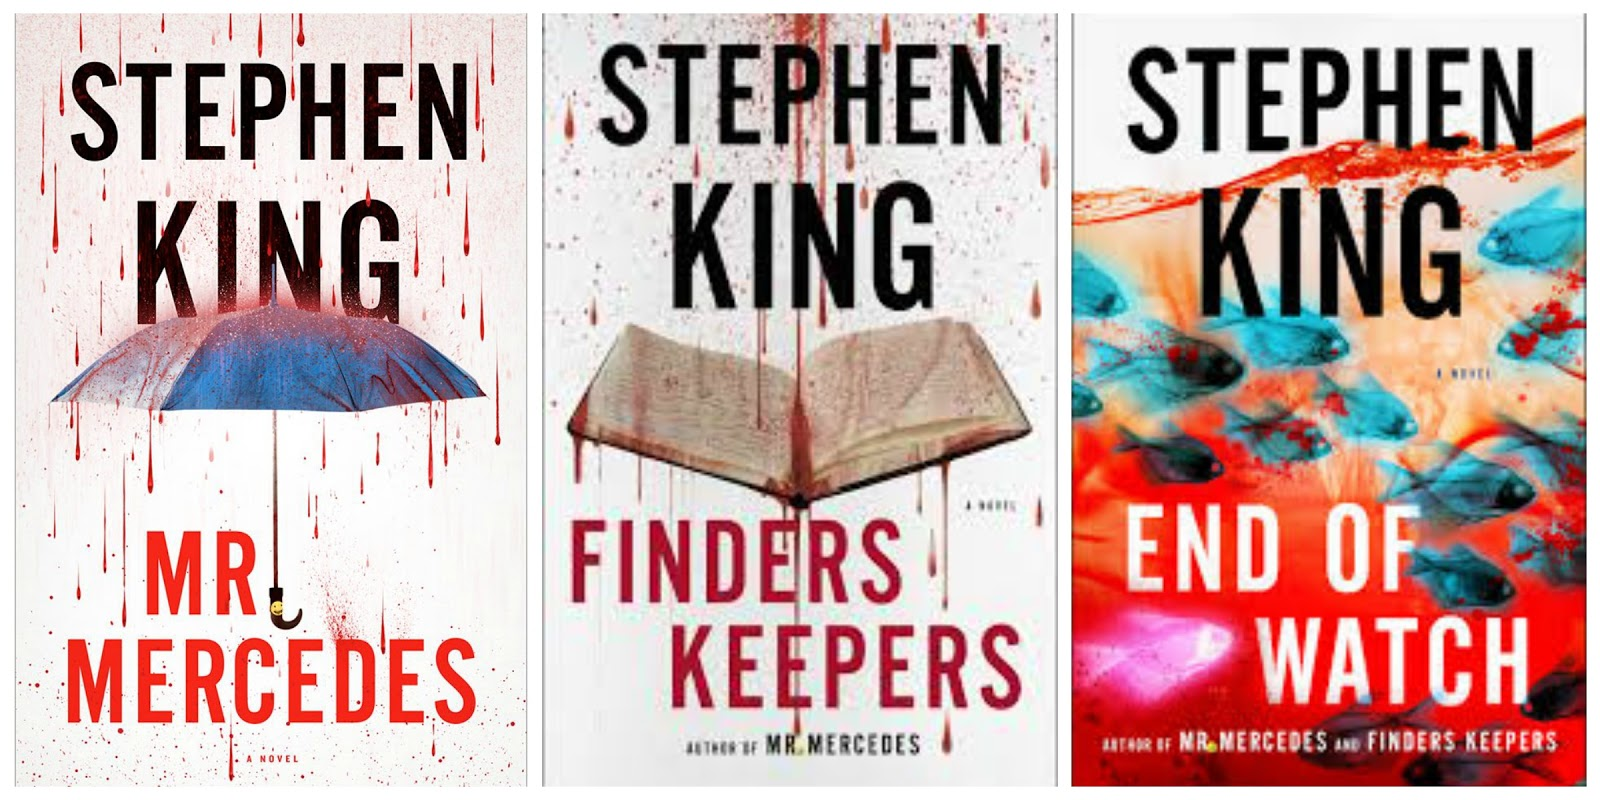 nfp: stephen king bill hodges trilogy   review